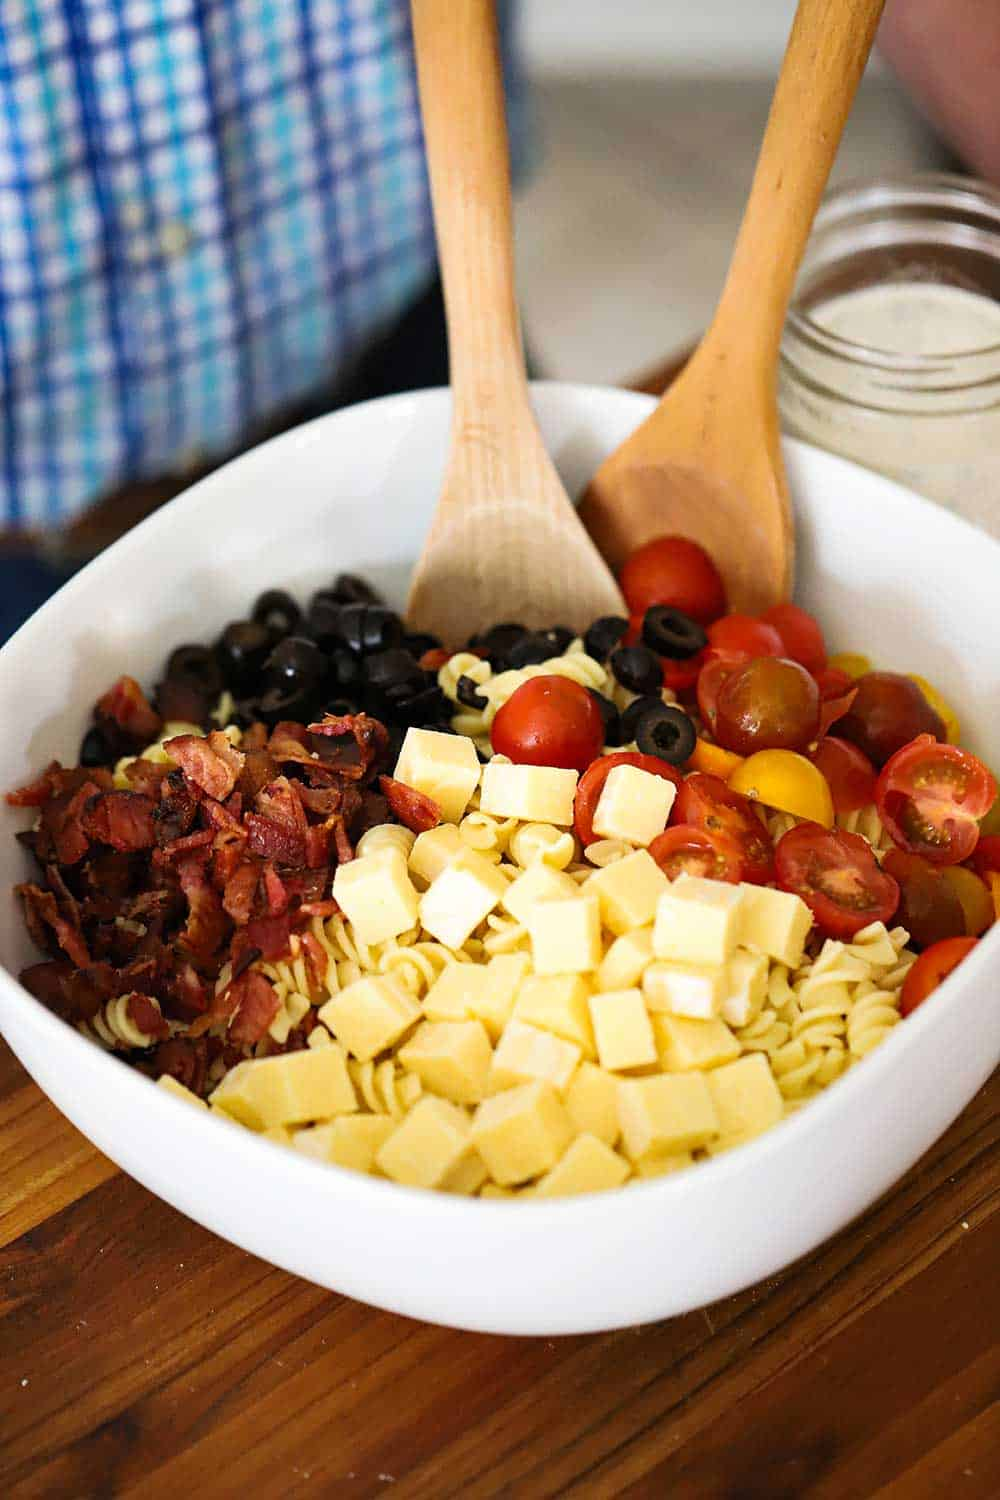 A large white serving bowl filled with pasta topped with cubed cheese, crumbled cooked bacon, sliced black olives, and halved cherry tomatoes.